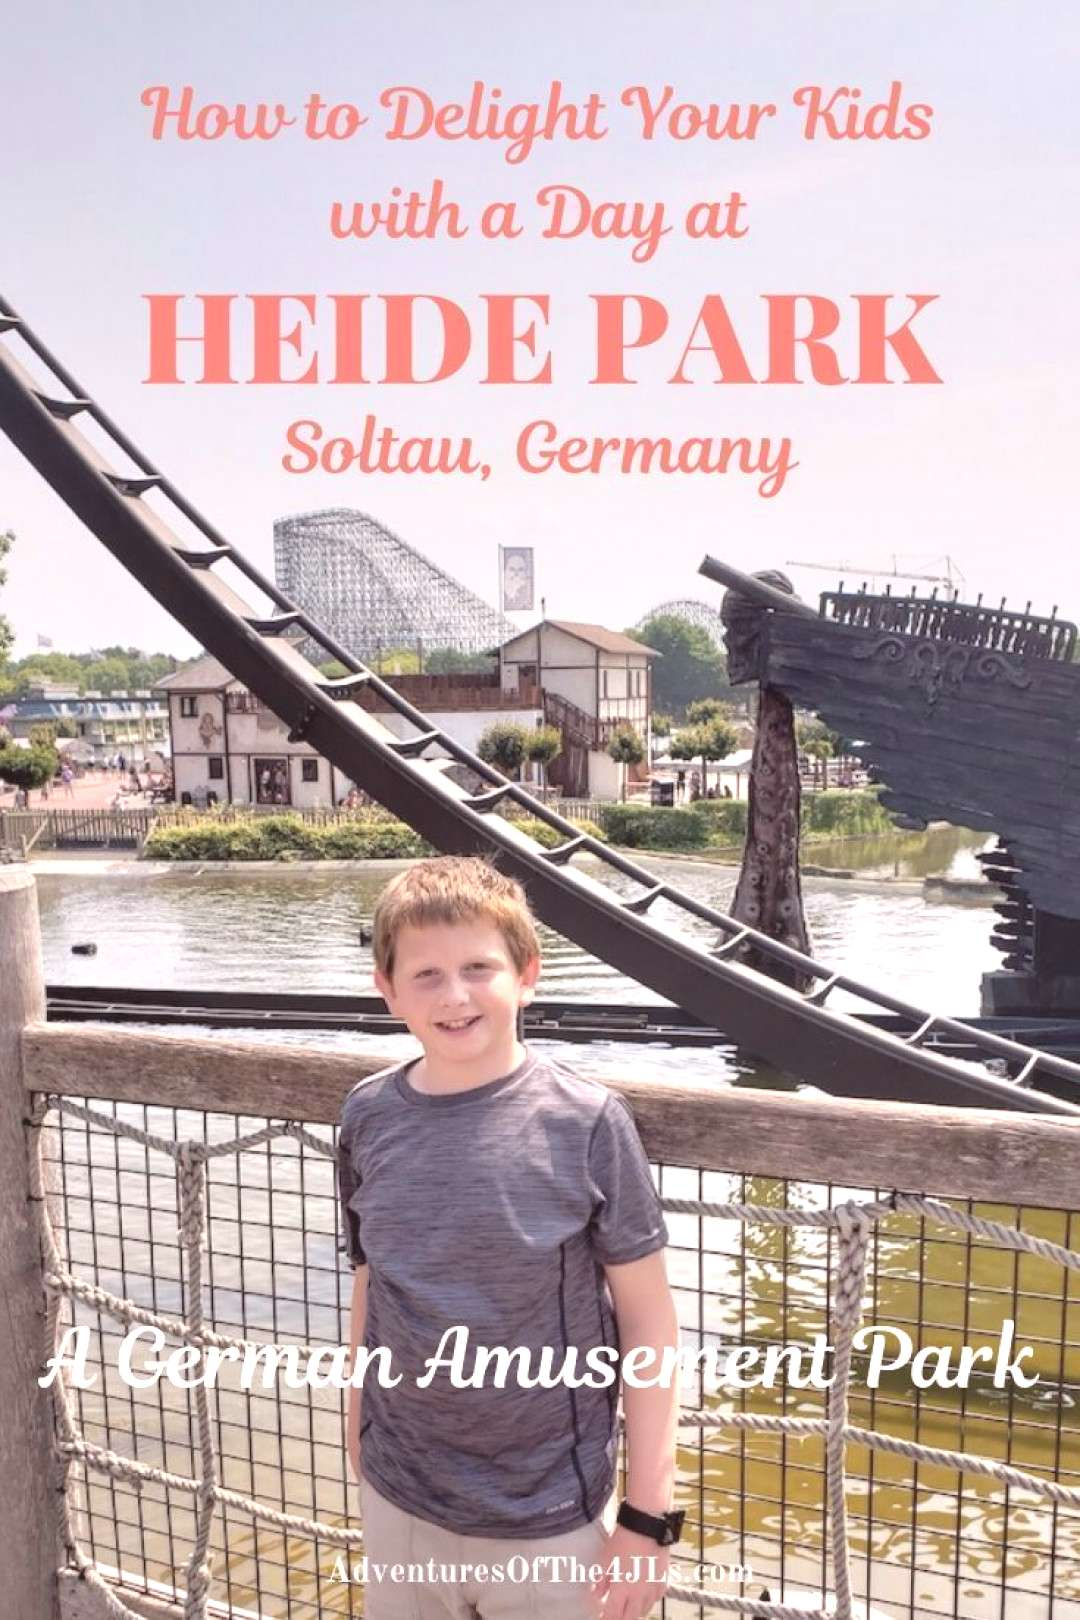 A German Amusement Park in Soltau, Germany Heide Park Join our family as we continue our internati